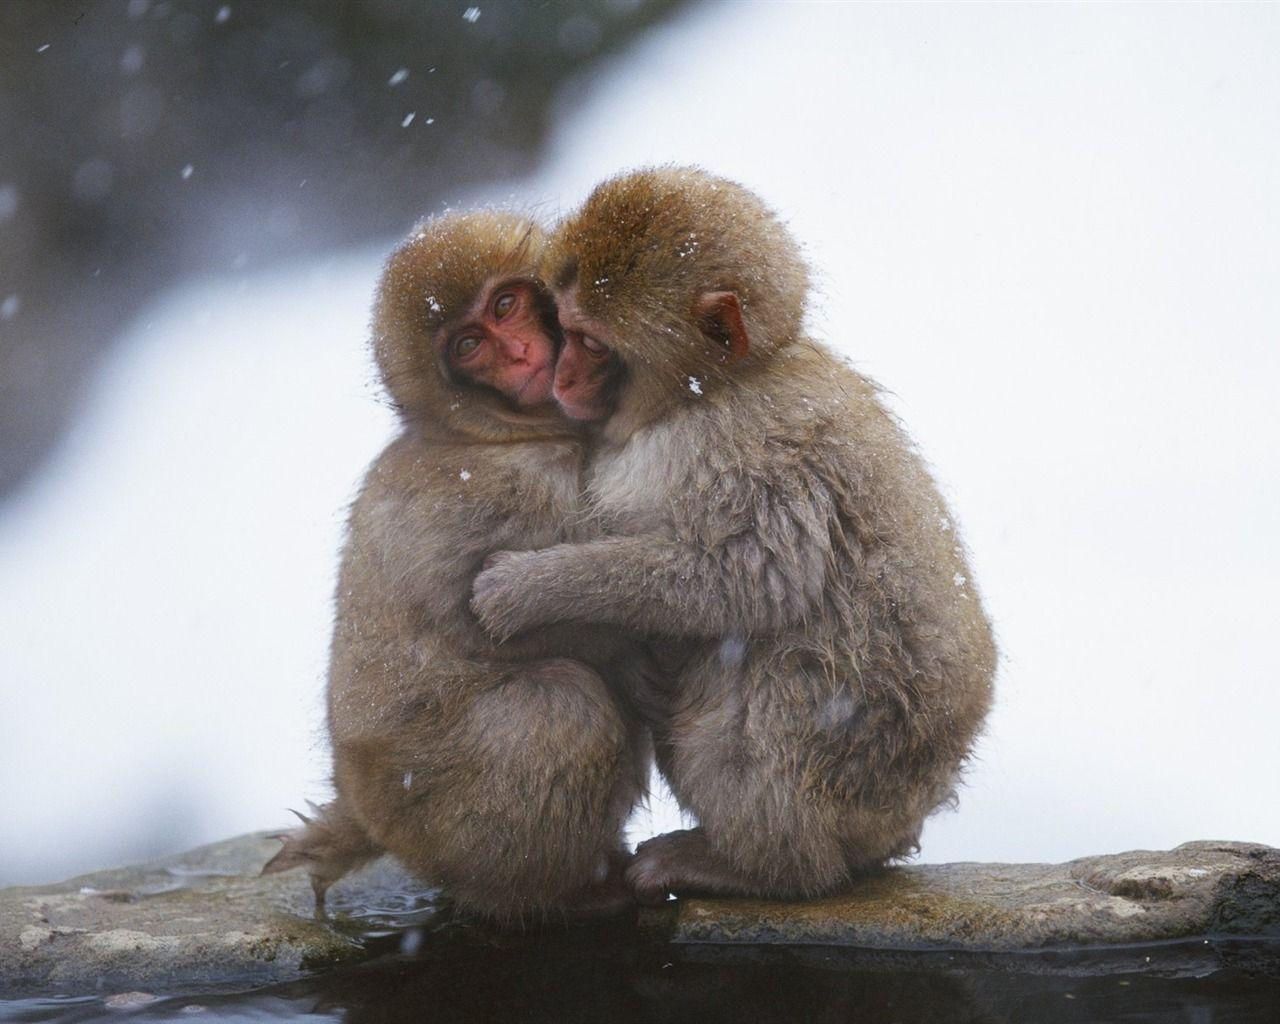 Snow hugged the monkey wallpaper - 1280x1024 wallpaper download -